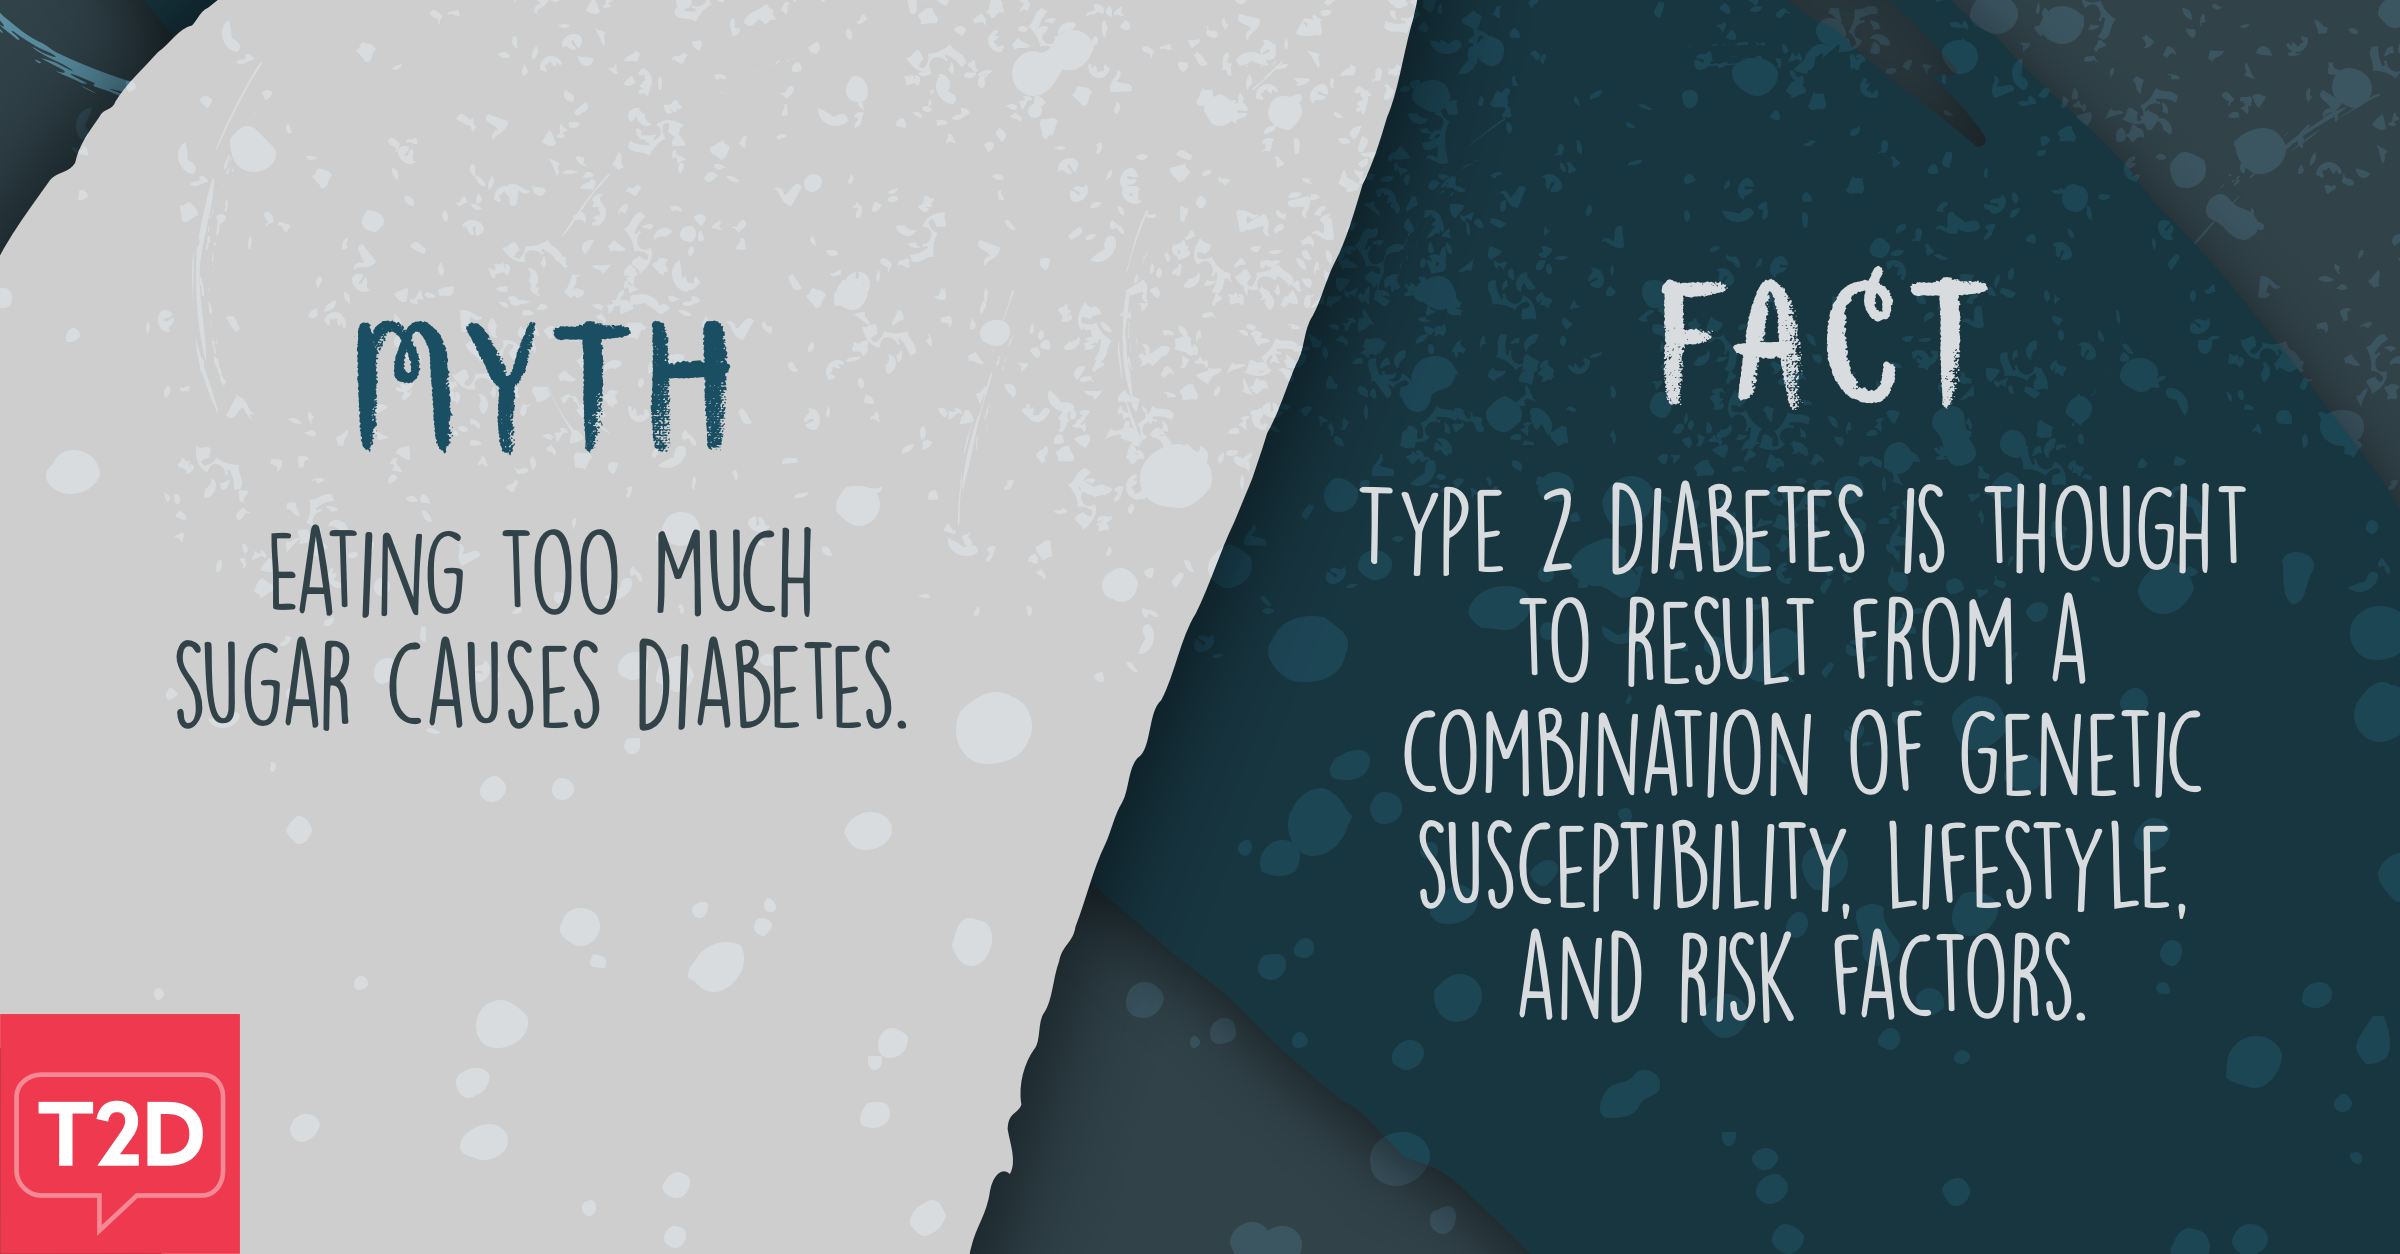 Myth: Eating too much sugar causes diabetes. Fact: Type 2 diabetes is thought to result from a combination of genetic susceptibility, lifestyle, and risk factors.